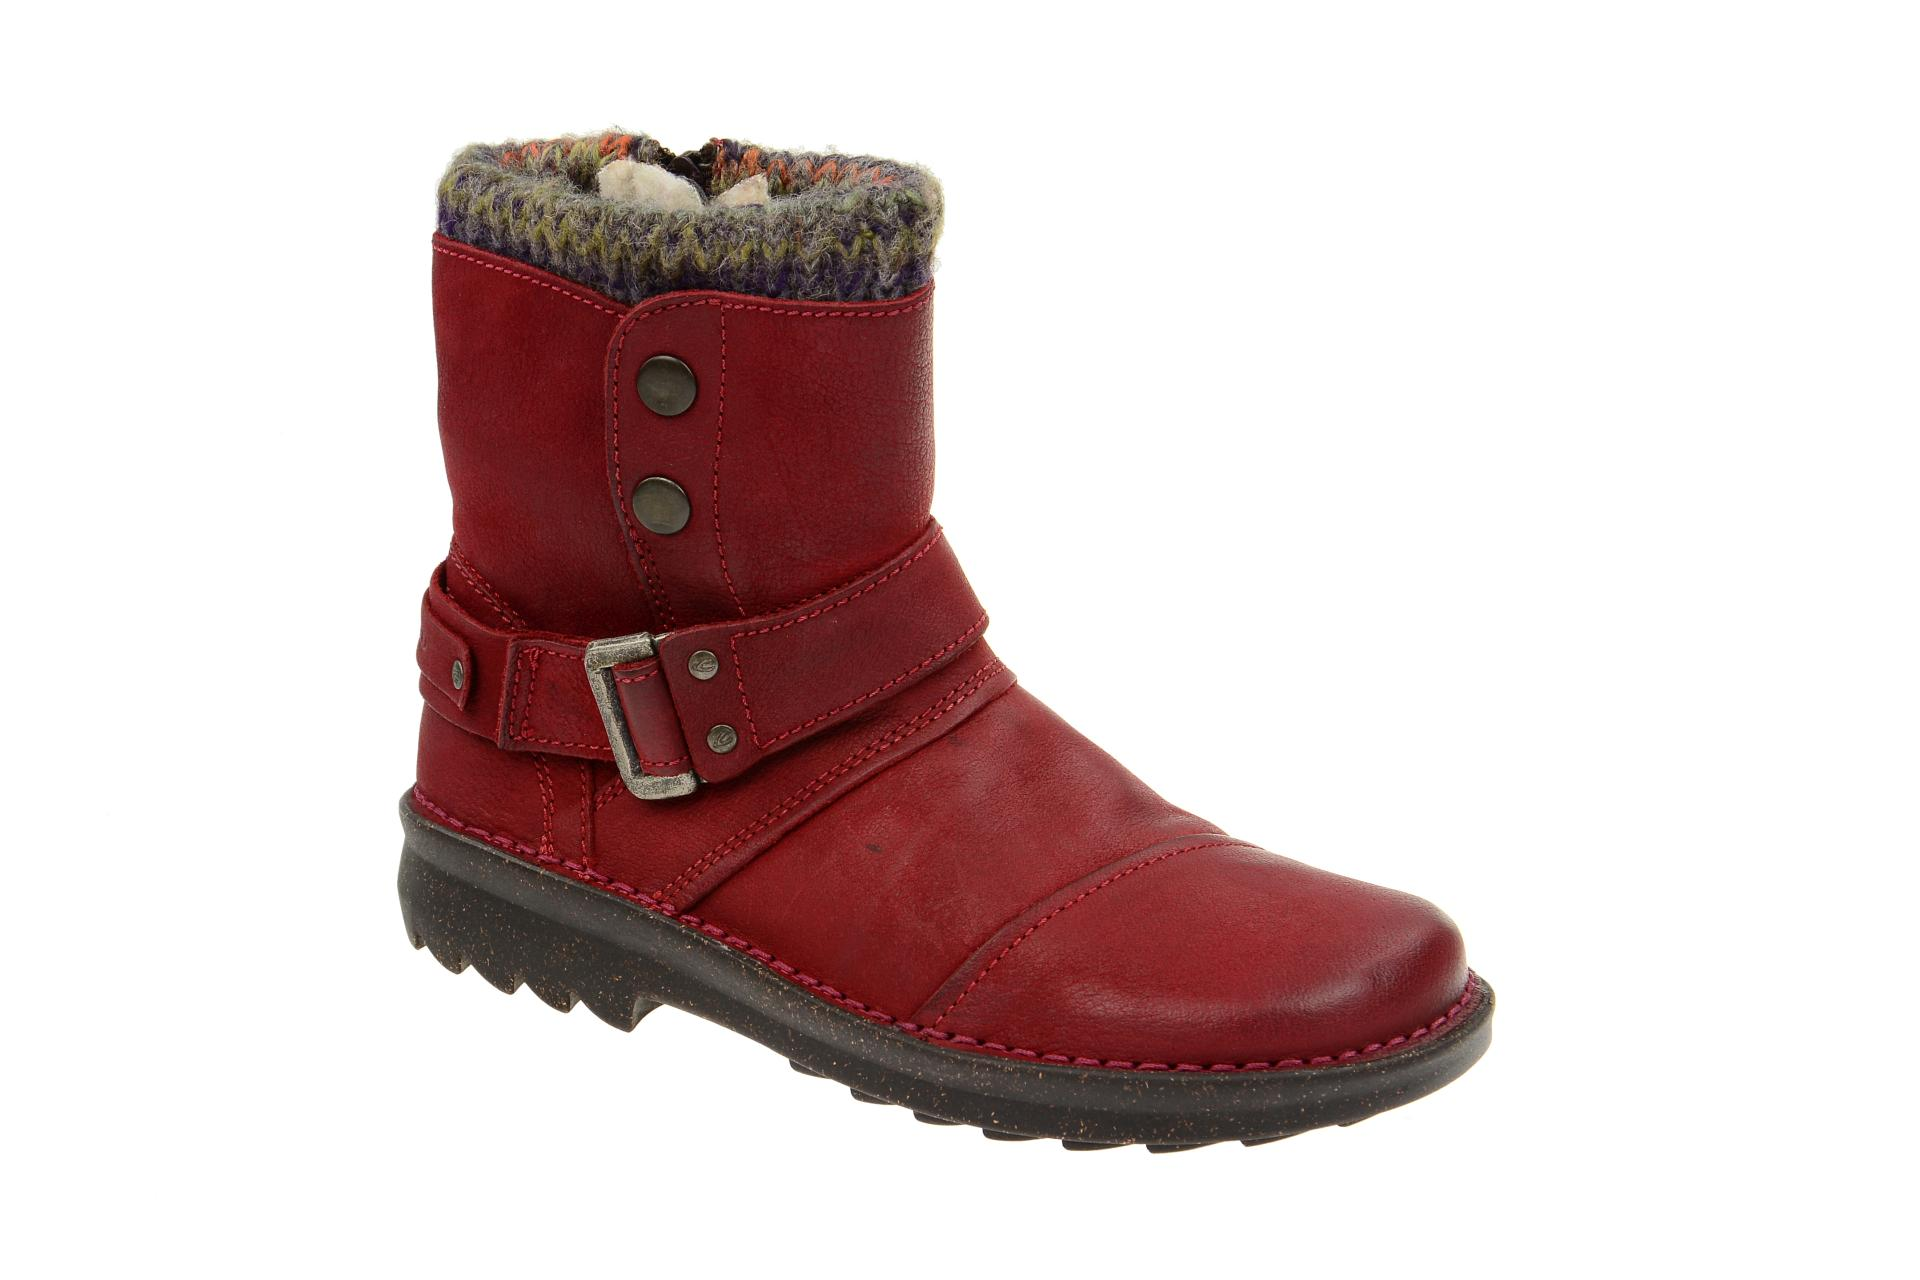 info for 47d4c bb932 camel active Ontario 28 Stiefelette rot